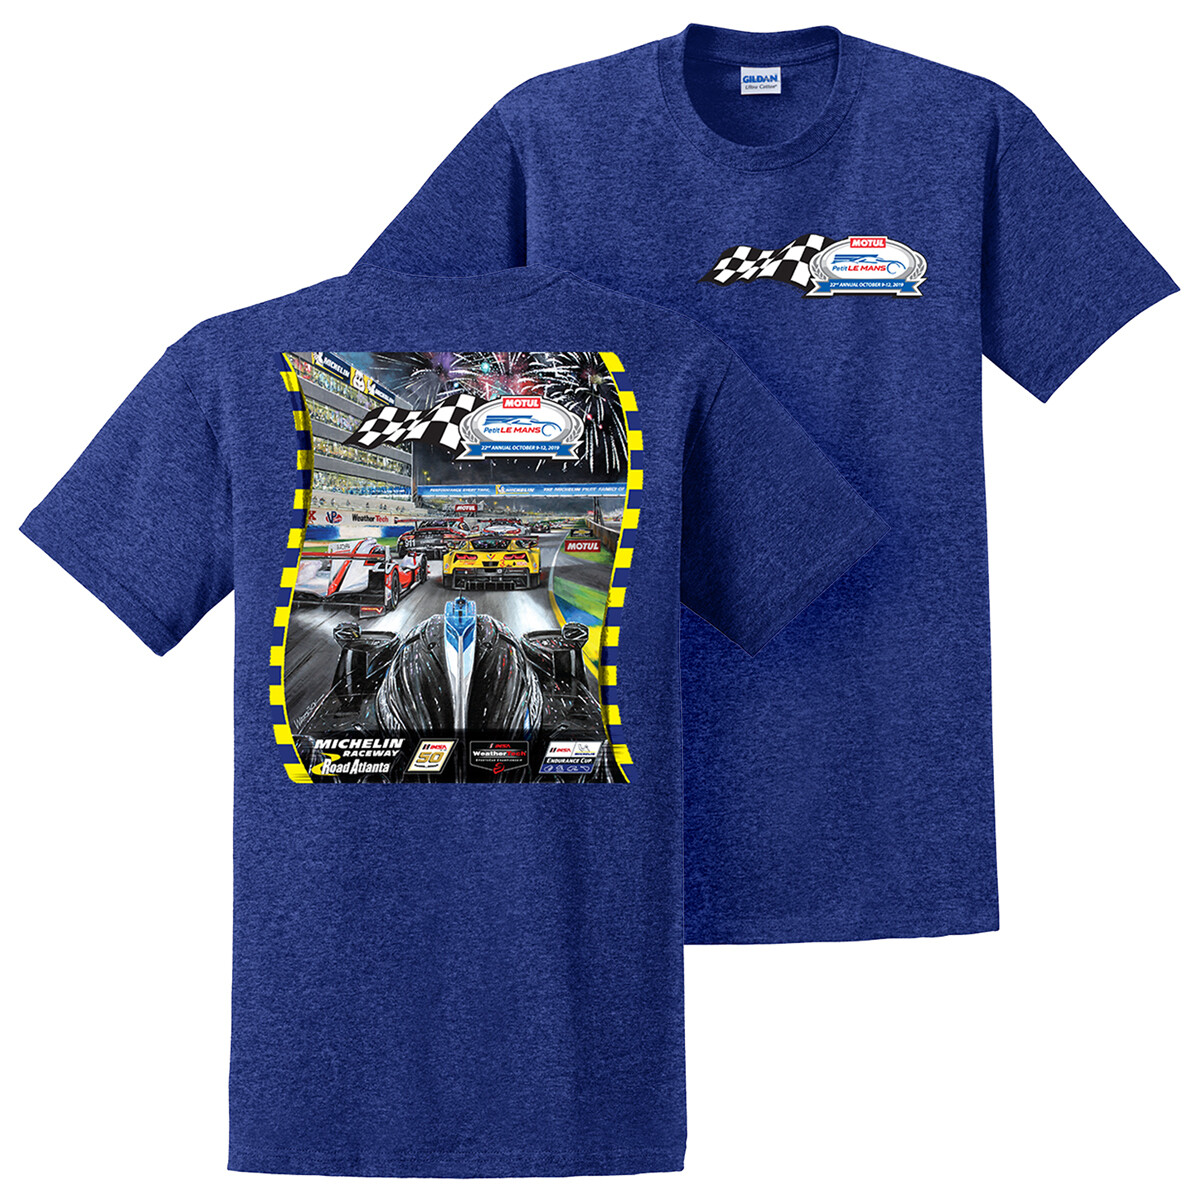 2019 Motul Petit Le Mans Poster Tee - Antique Royal